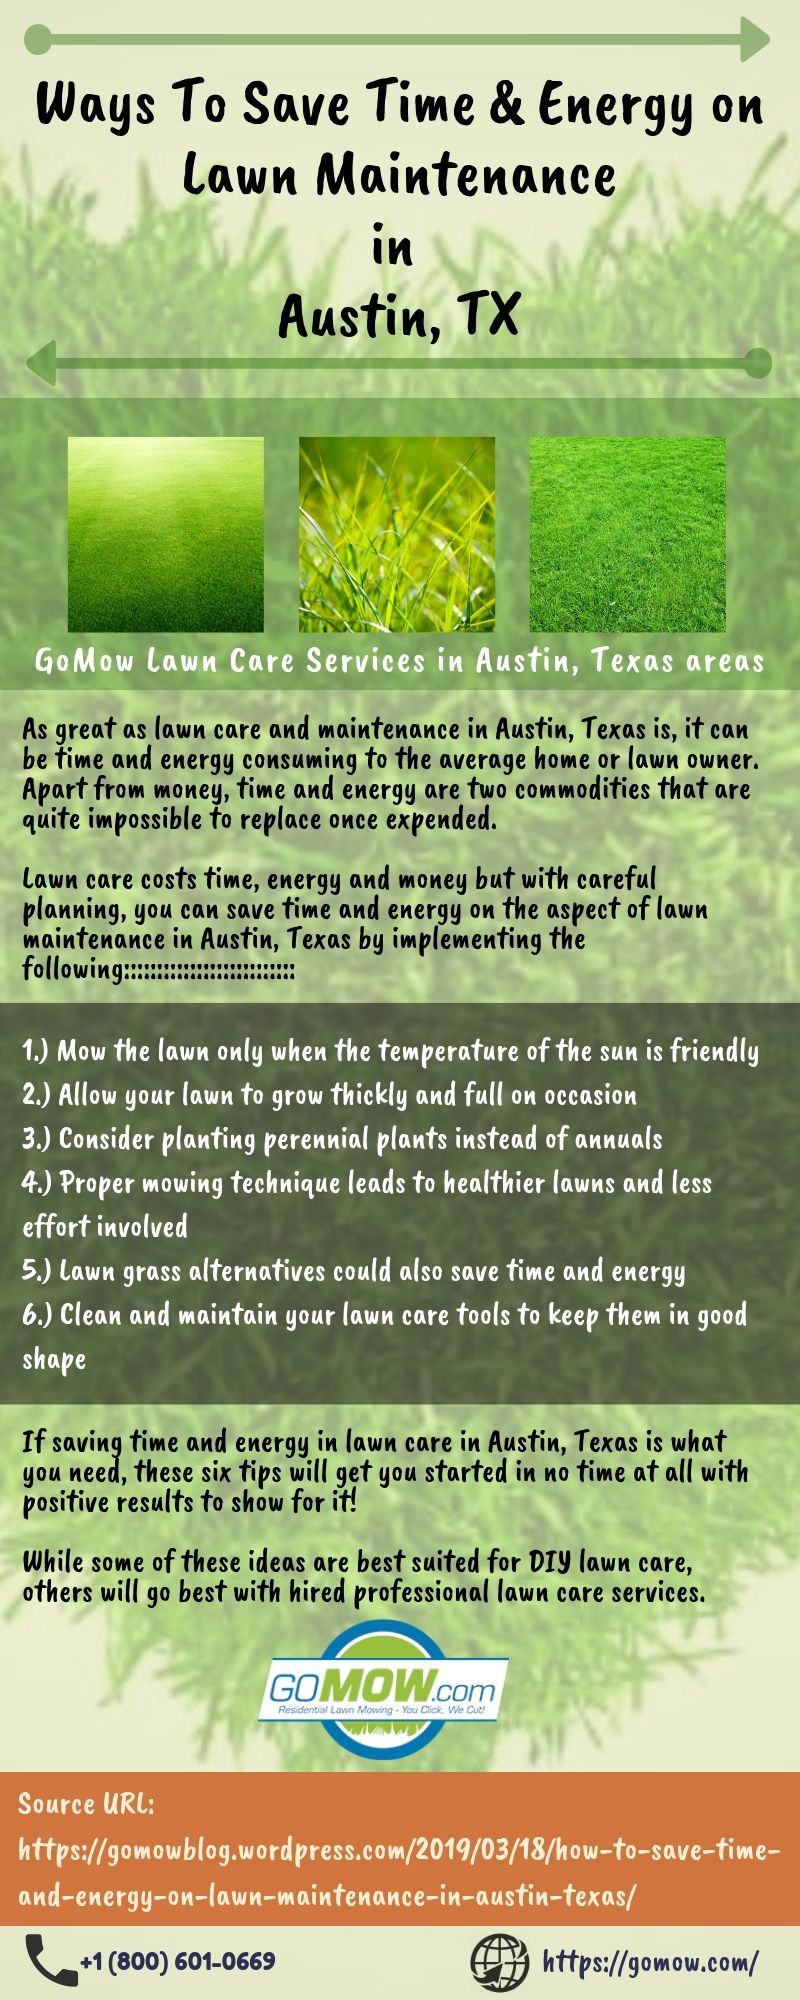 Ways to save your time and energy on lawn maintenance in Austin, TX